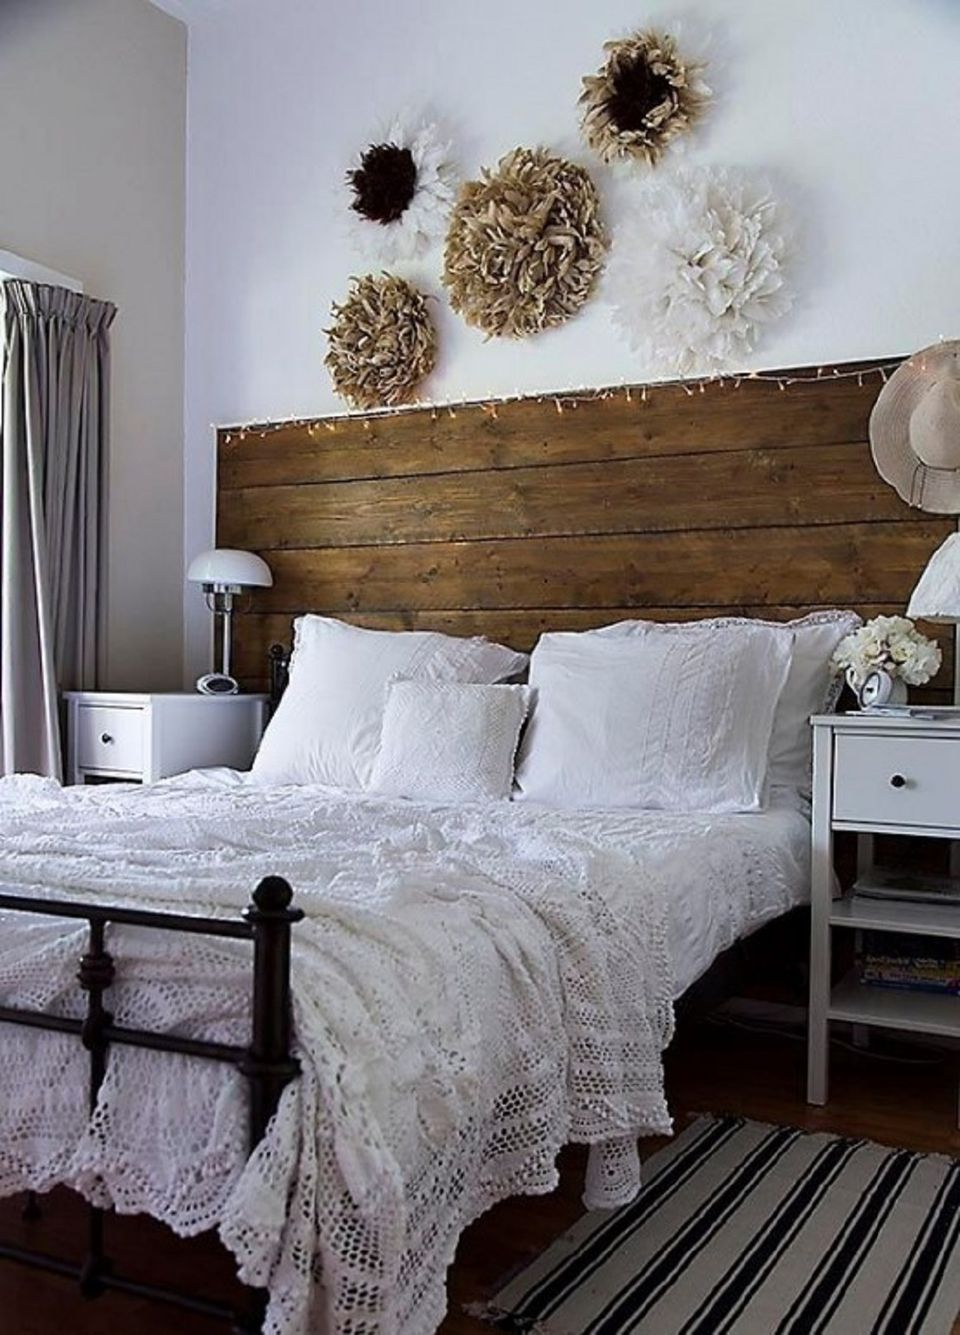 Interior Vintage Style Bedroom Ideas vintage bedroom decorating ideas and photos rustic bedroom